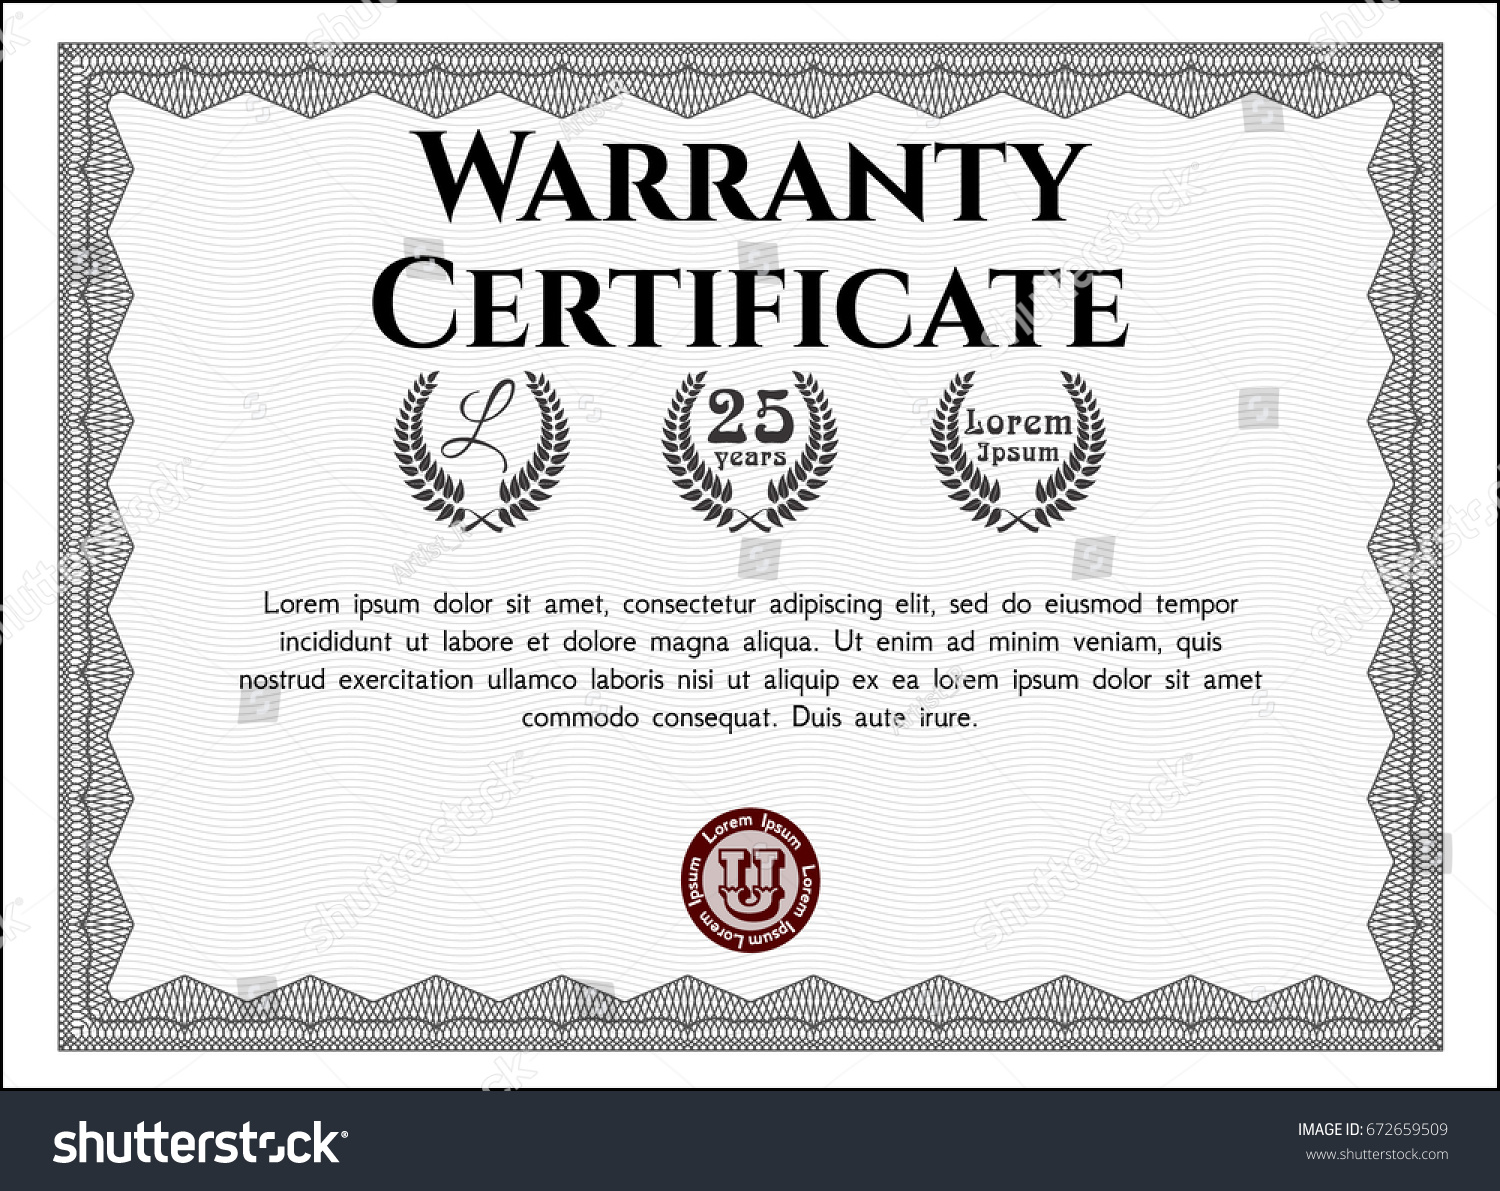 Warranty Certificate Template Word Gallery Templates Example Warranty Certificate  Template Images Templates Example Free Download Money Within Money Certificate Template